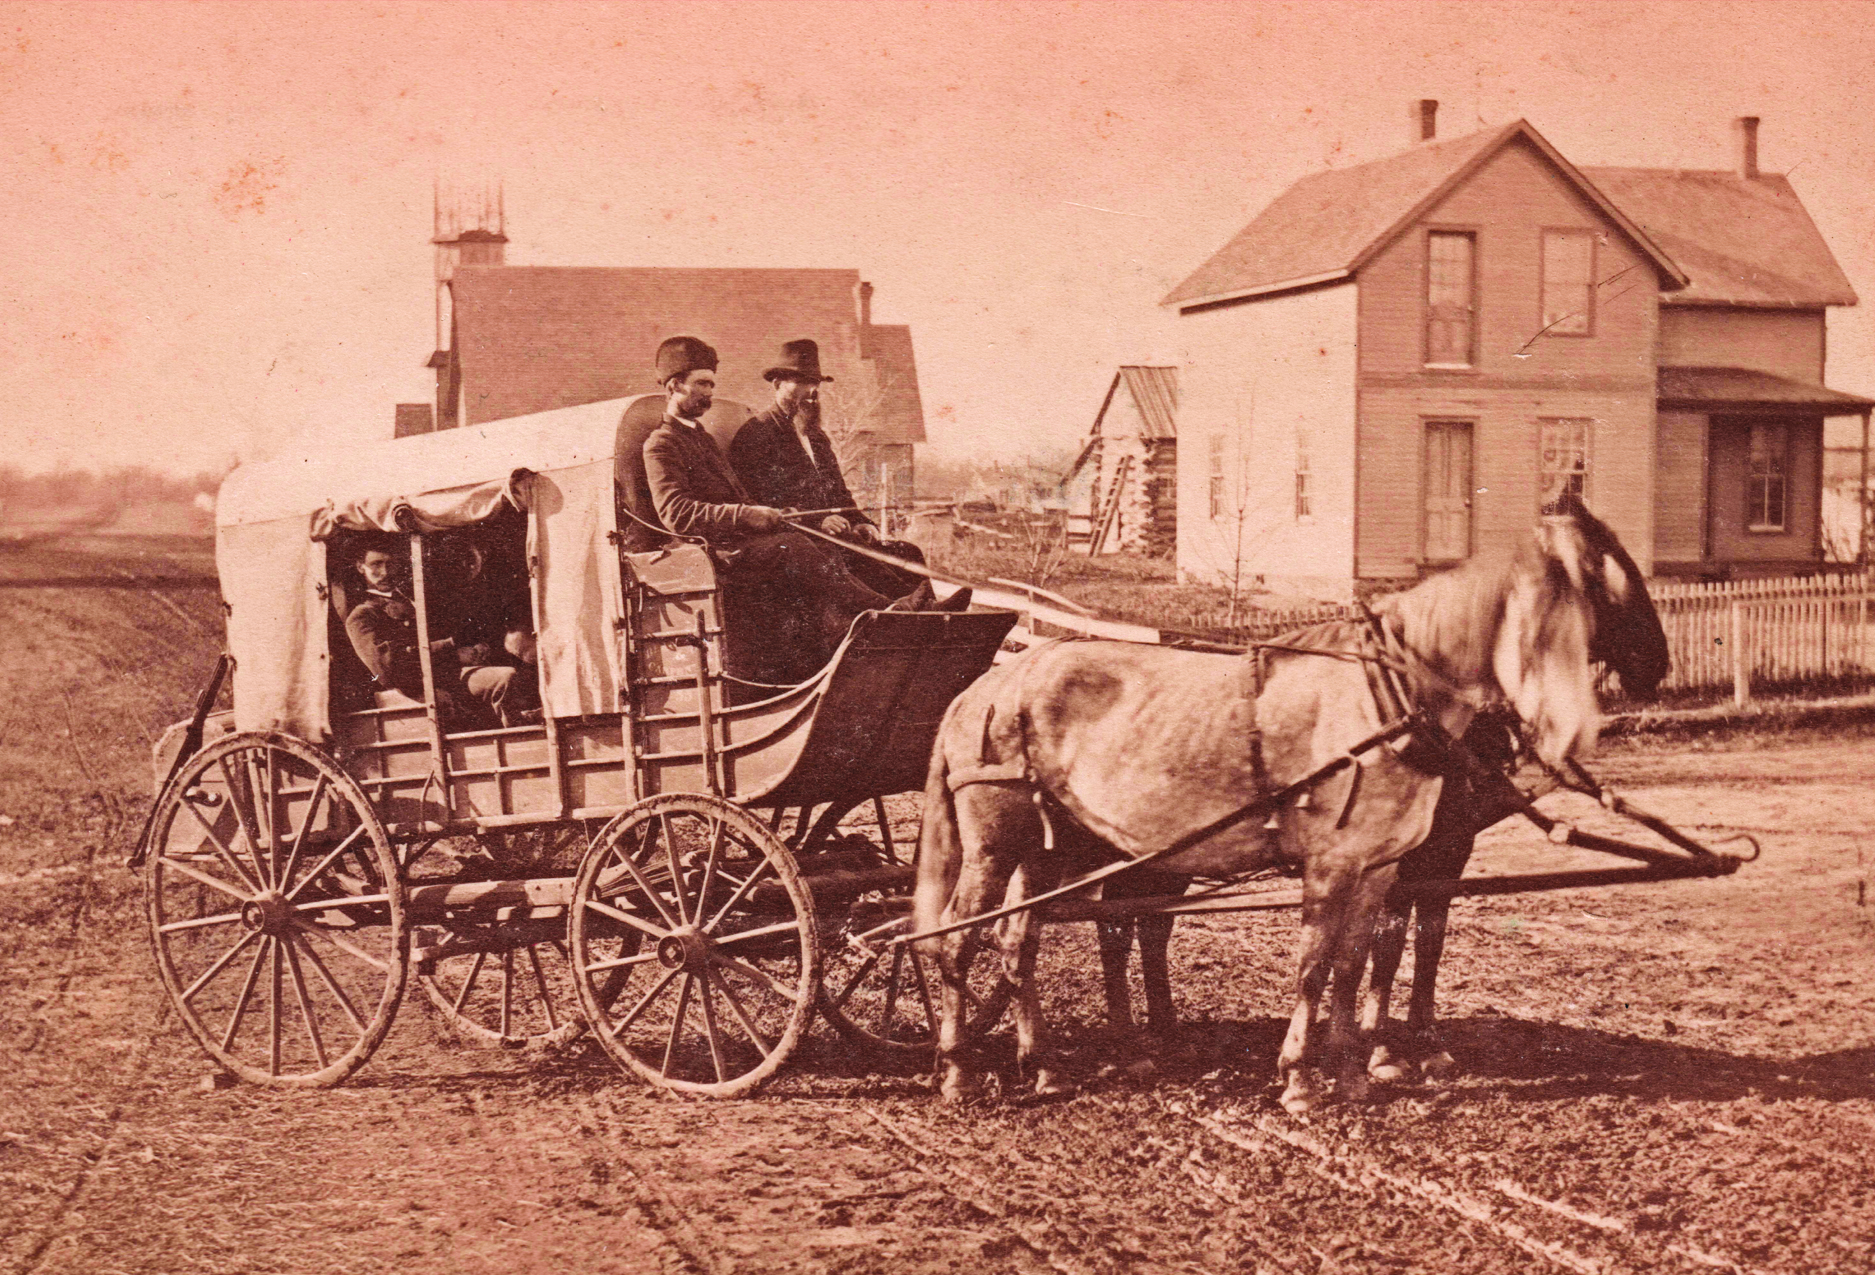 historic photo showing a stagecoach pulled by two horses. two drivers sit at the front, and a man peeks out from behind the canvas covering